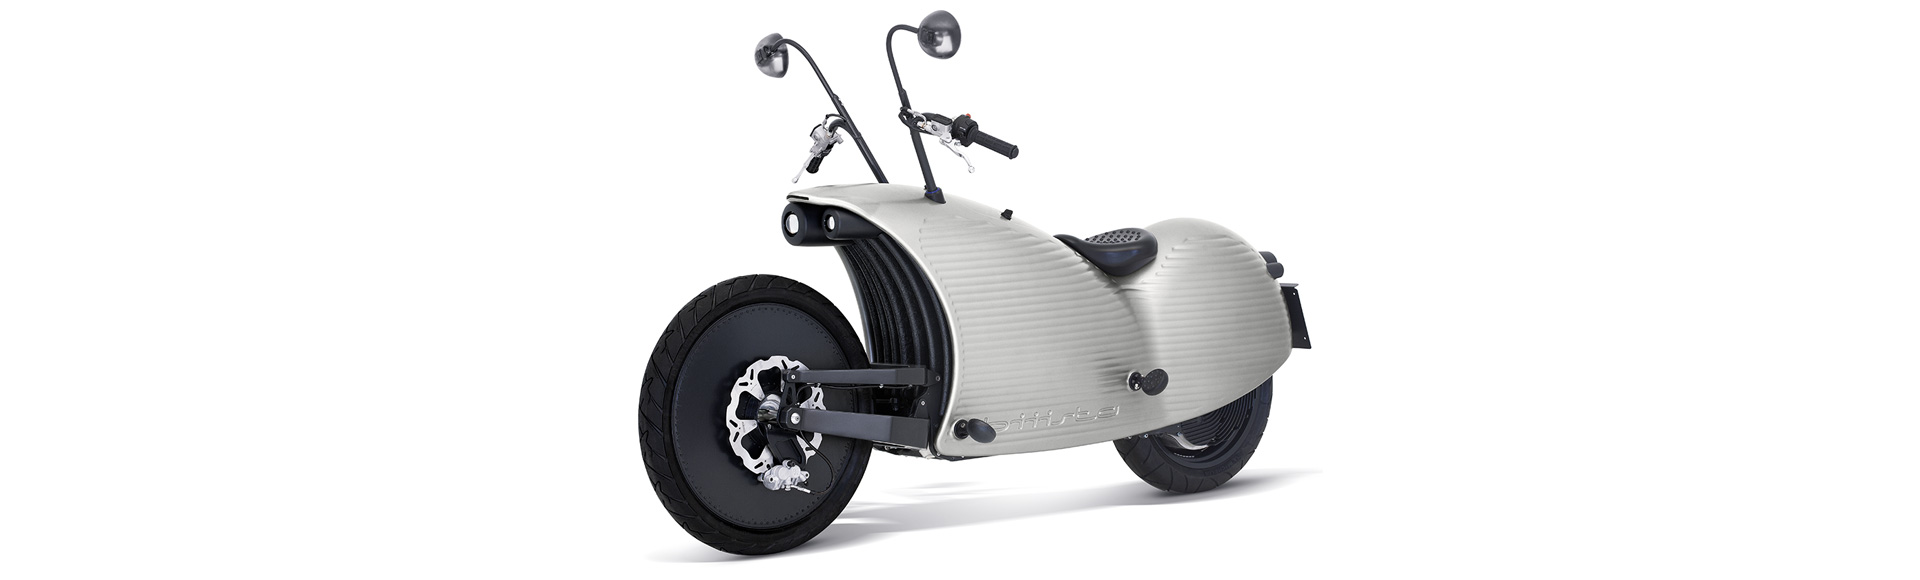 Polizza e-bike